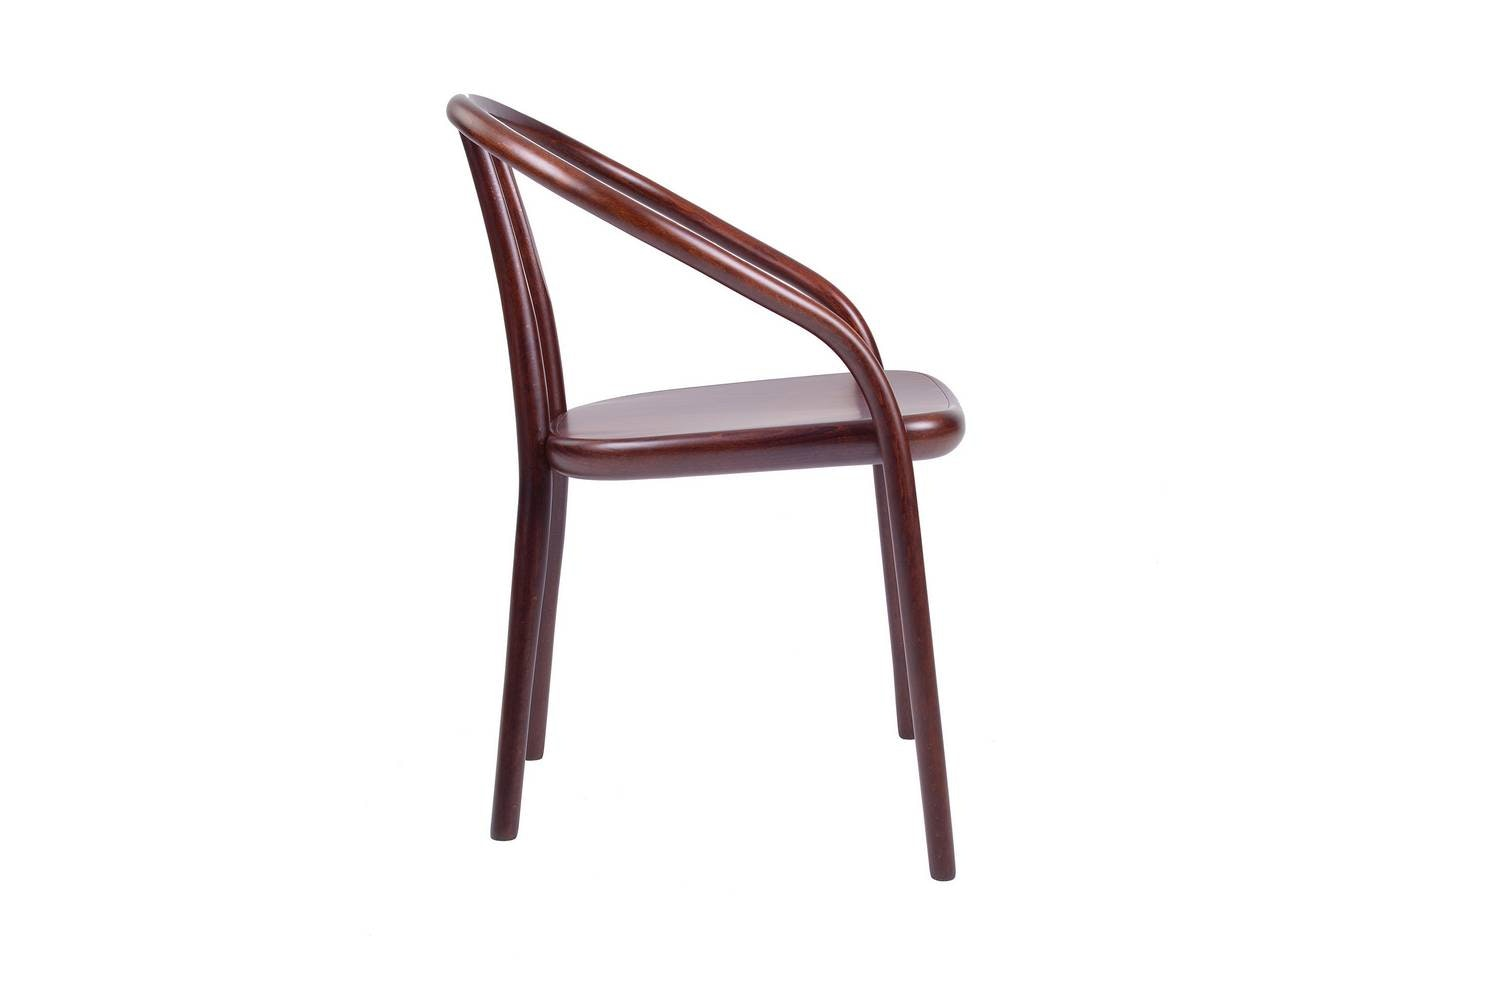 Gustav Chair by Gordon Guillaumier for Wiener GTV Design